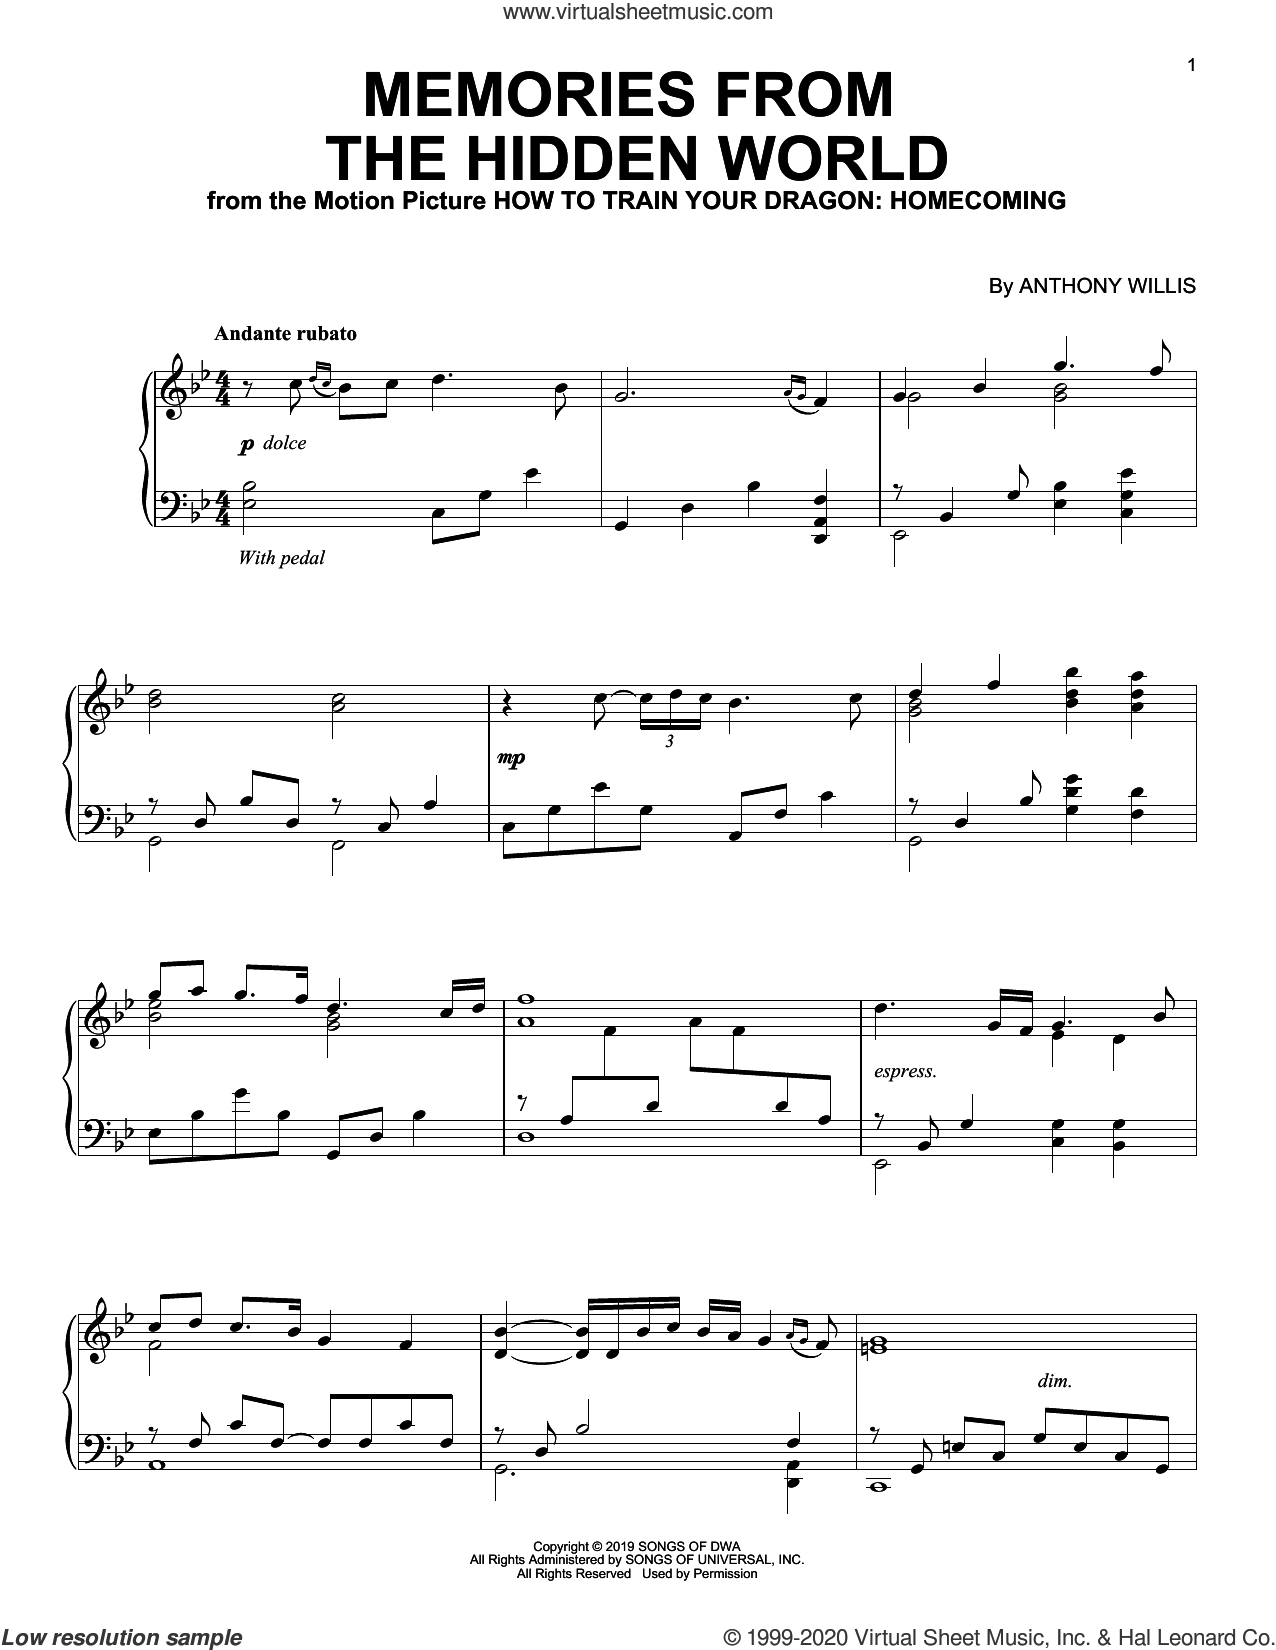 Memories From The Hidden World (from How To Train Your Dragon: Homecoming) sheet music for piano solo by Anthony Willis, intermediate skill level